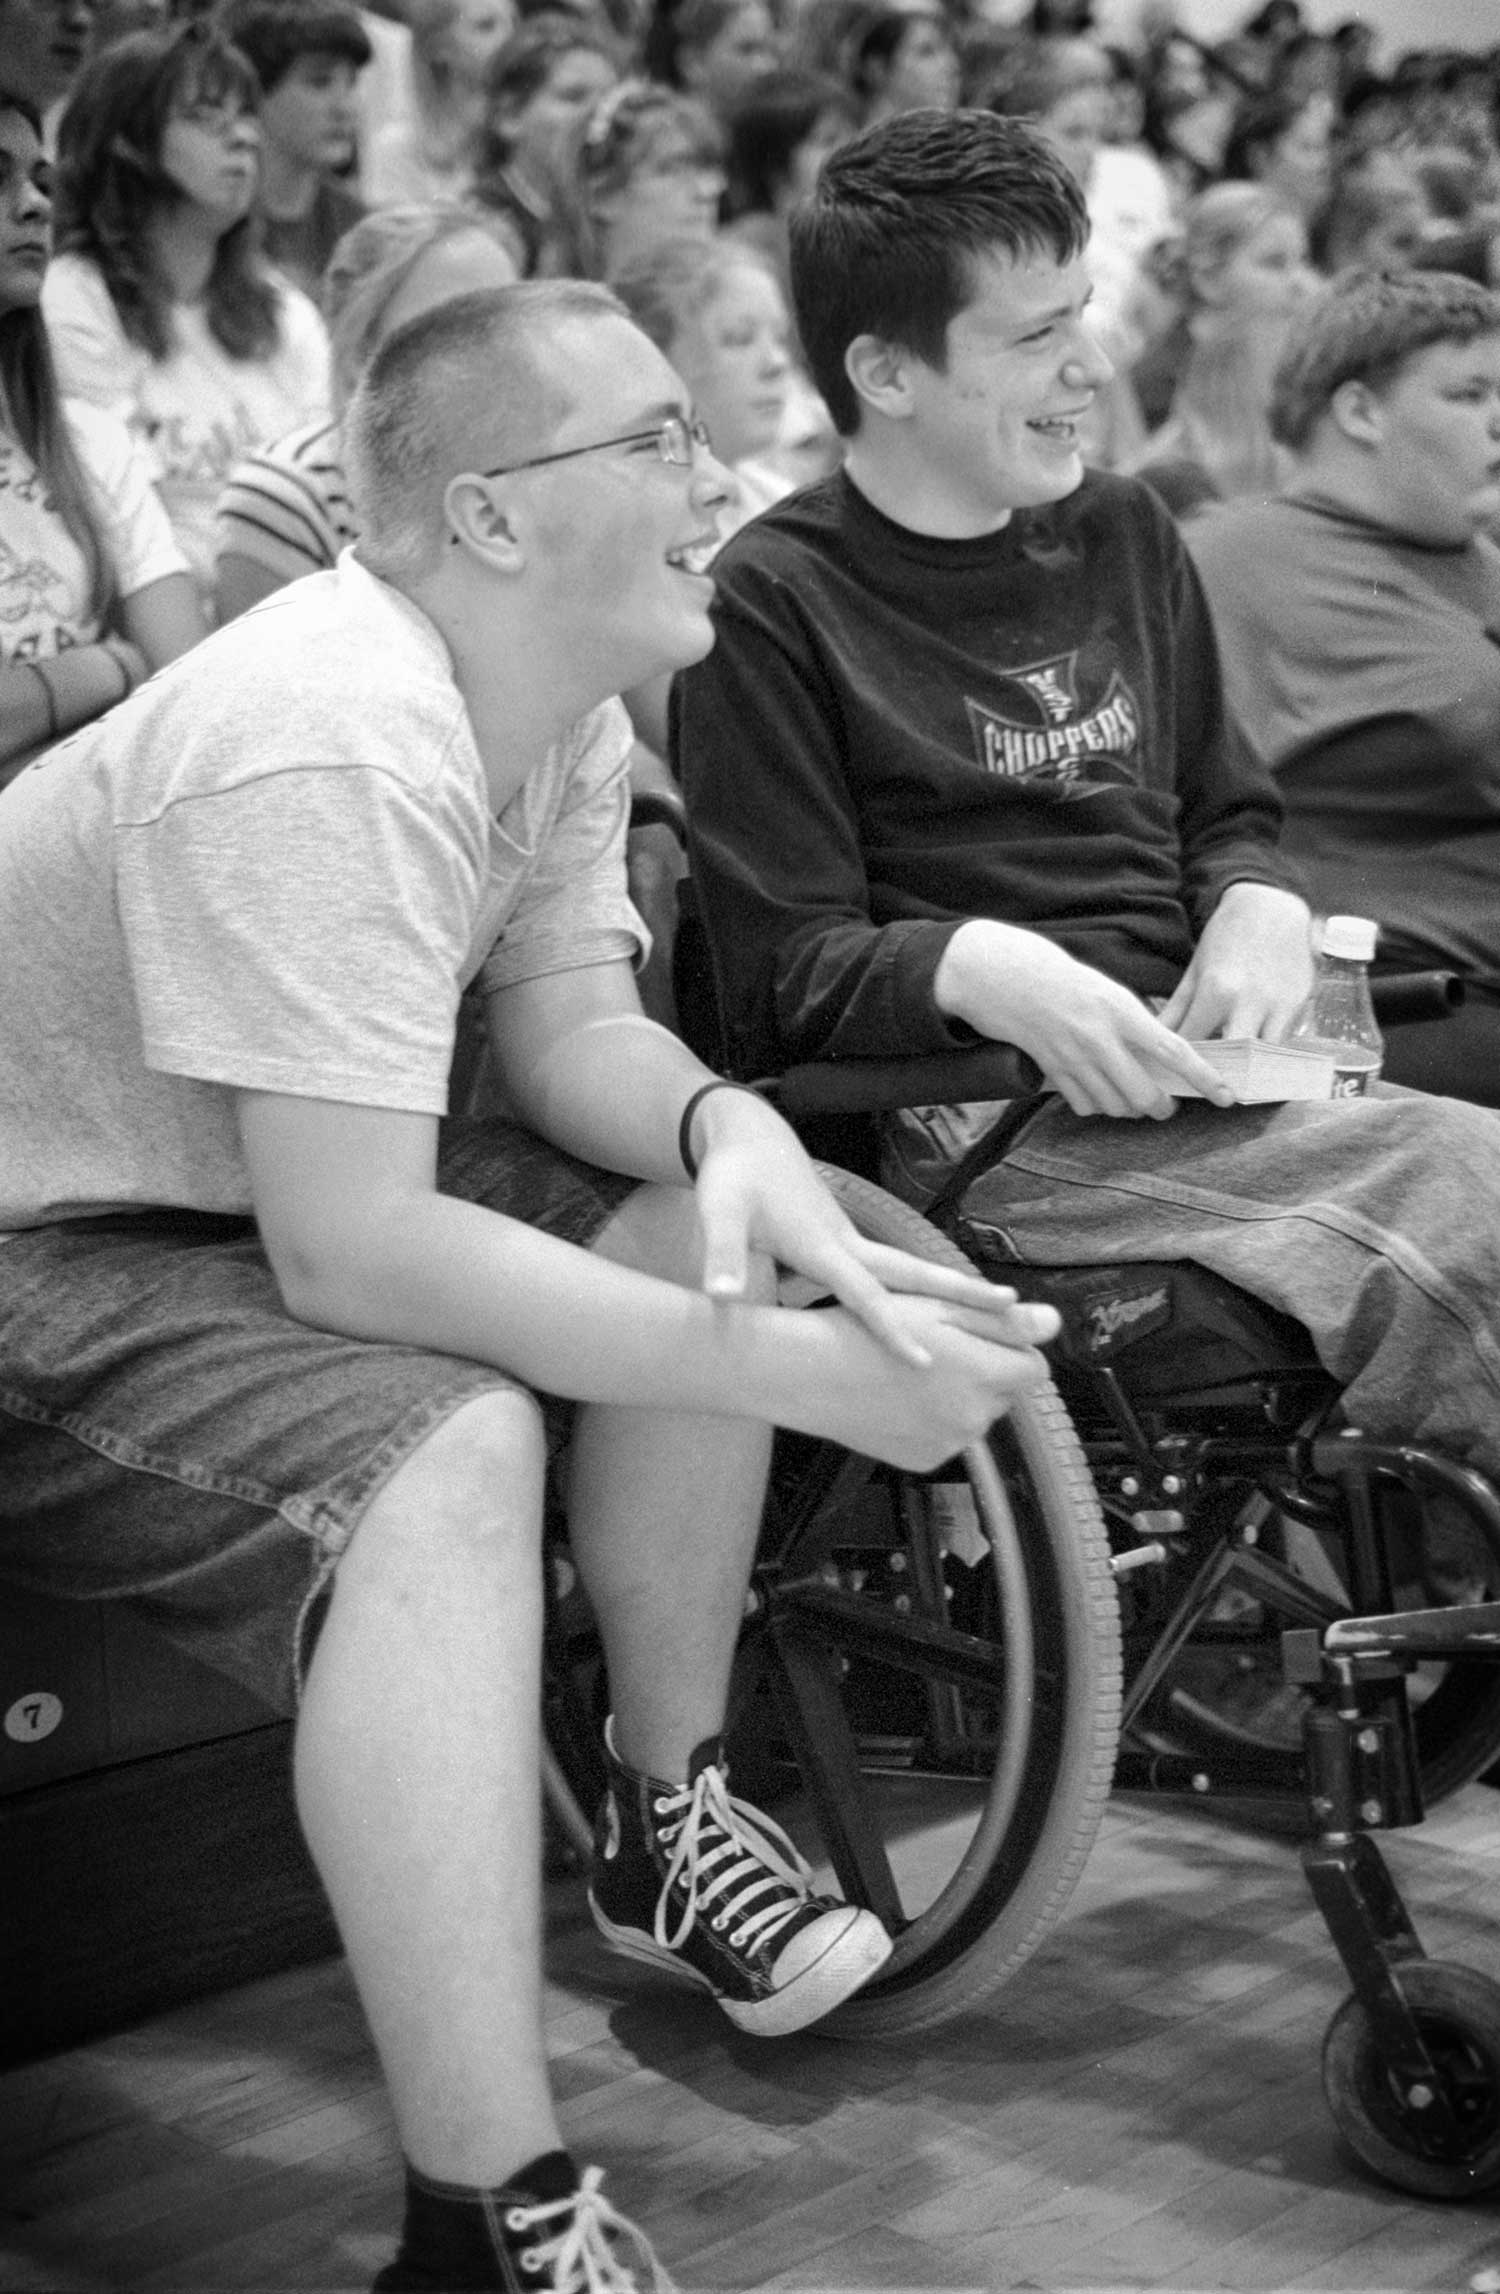 Nick Thacker, left, and Craig Whicker,eighth graders at Jacksboro Middle School, enjoy the show by Twist 'n Shout gymnasts. photo by Zach Zoeller - 2005